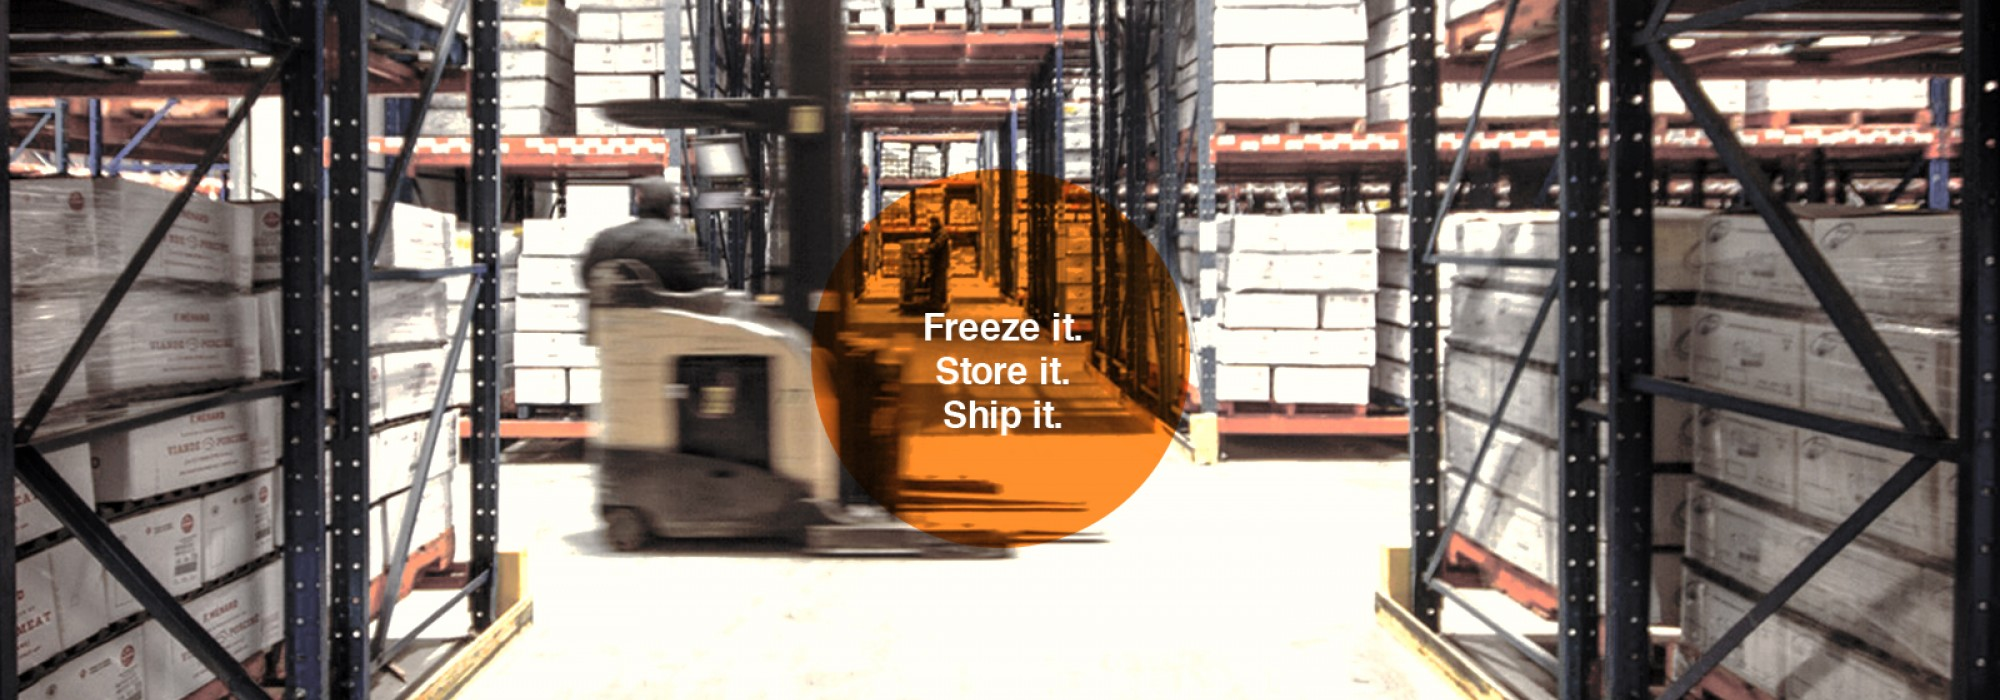 Freeze it. Store it. Ship it.